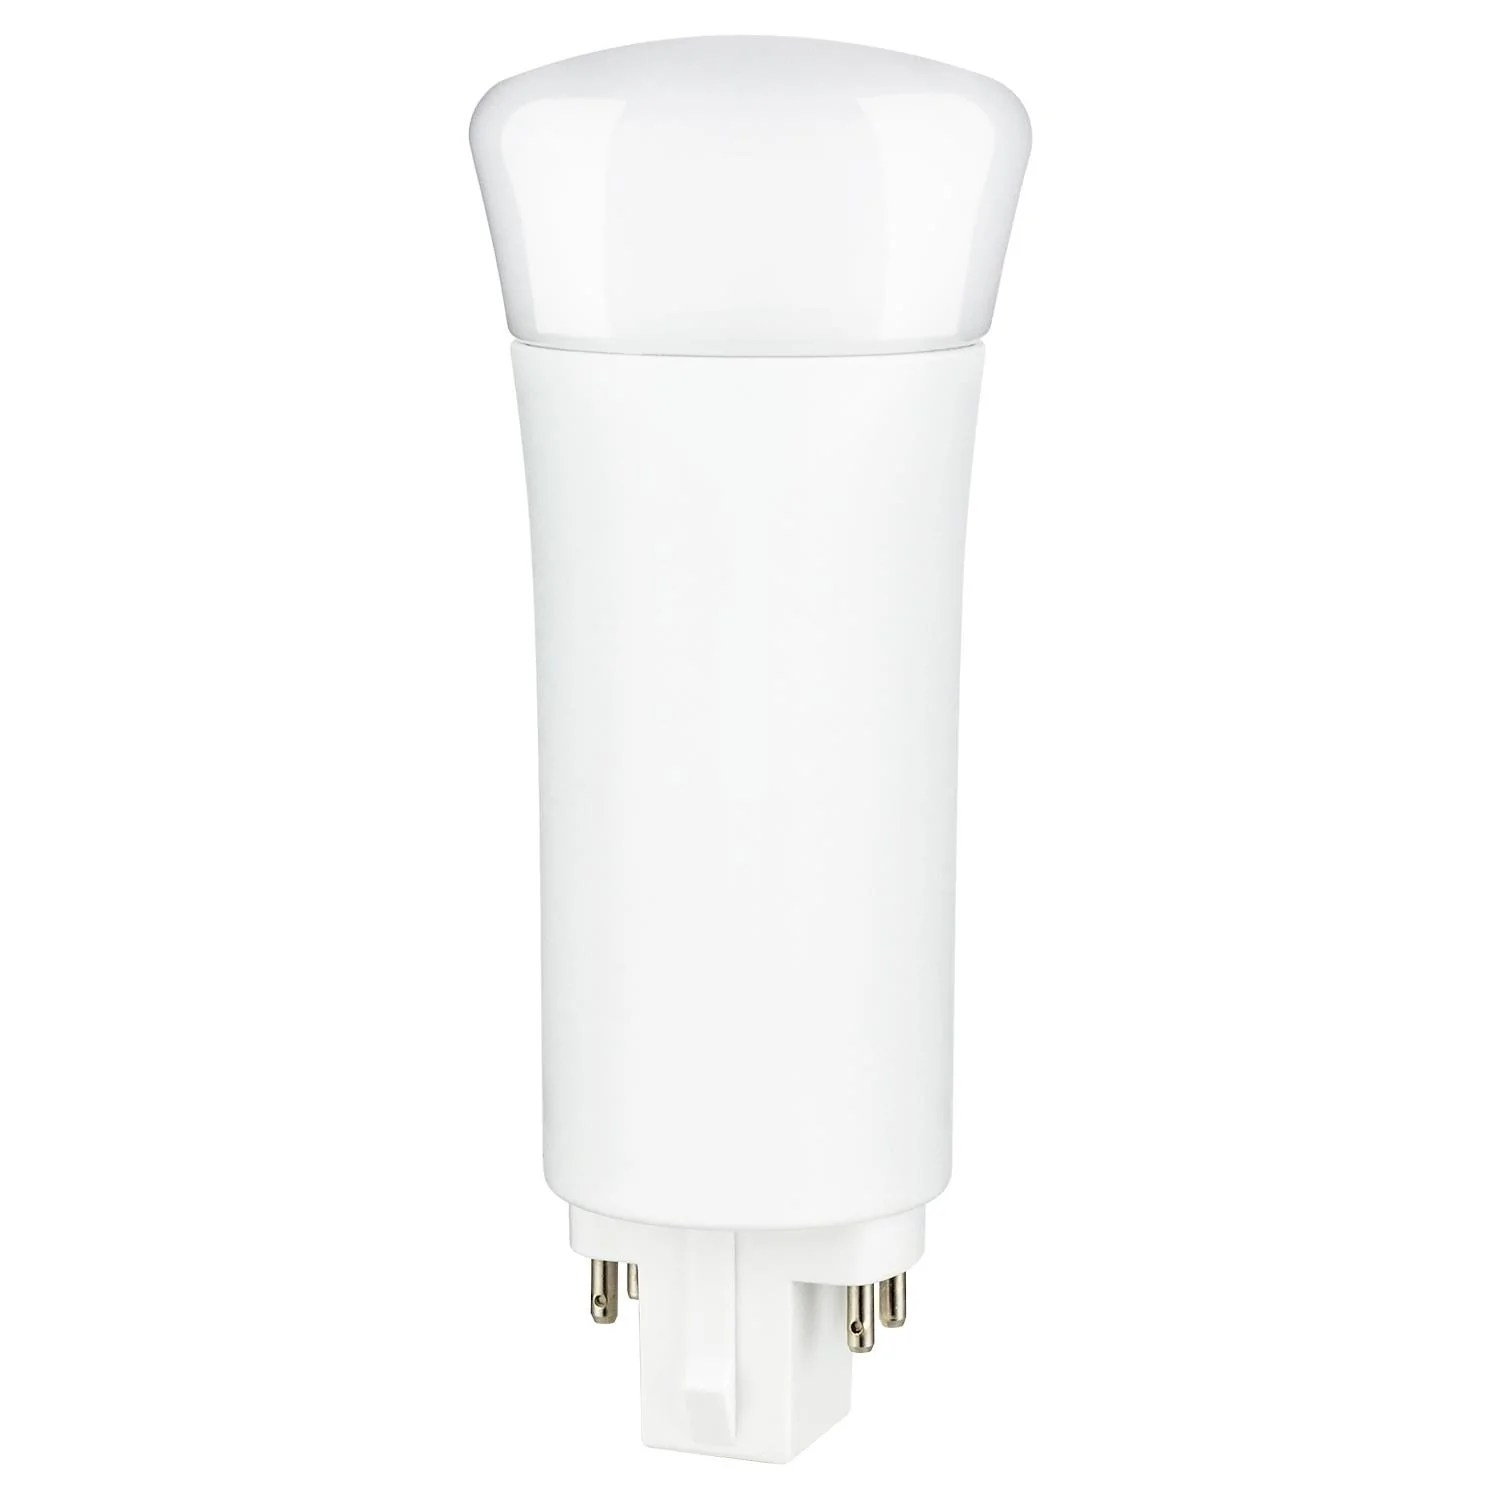 medium resolution of sunlite 88211 su led 9w plv lamps g24q base 3500k neutral white bulbamerica